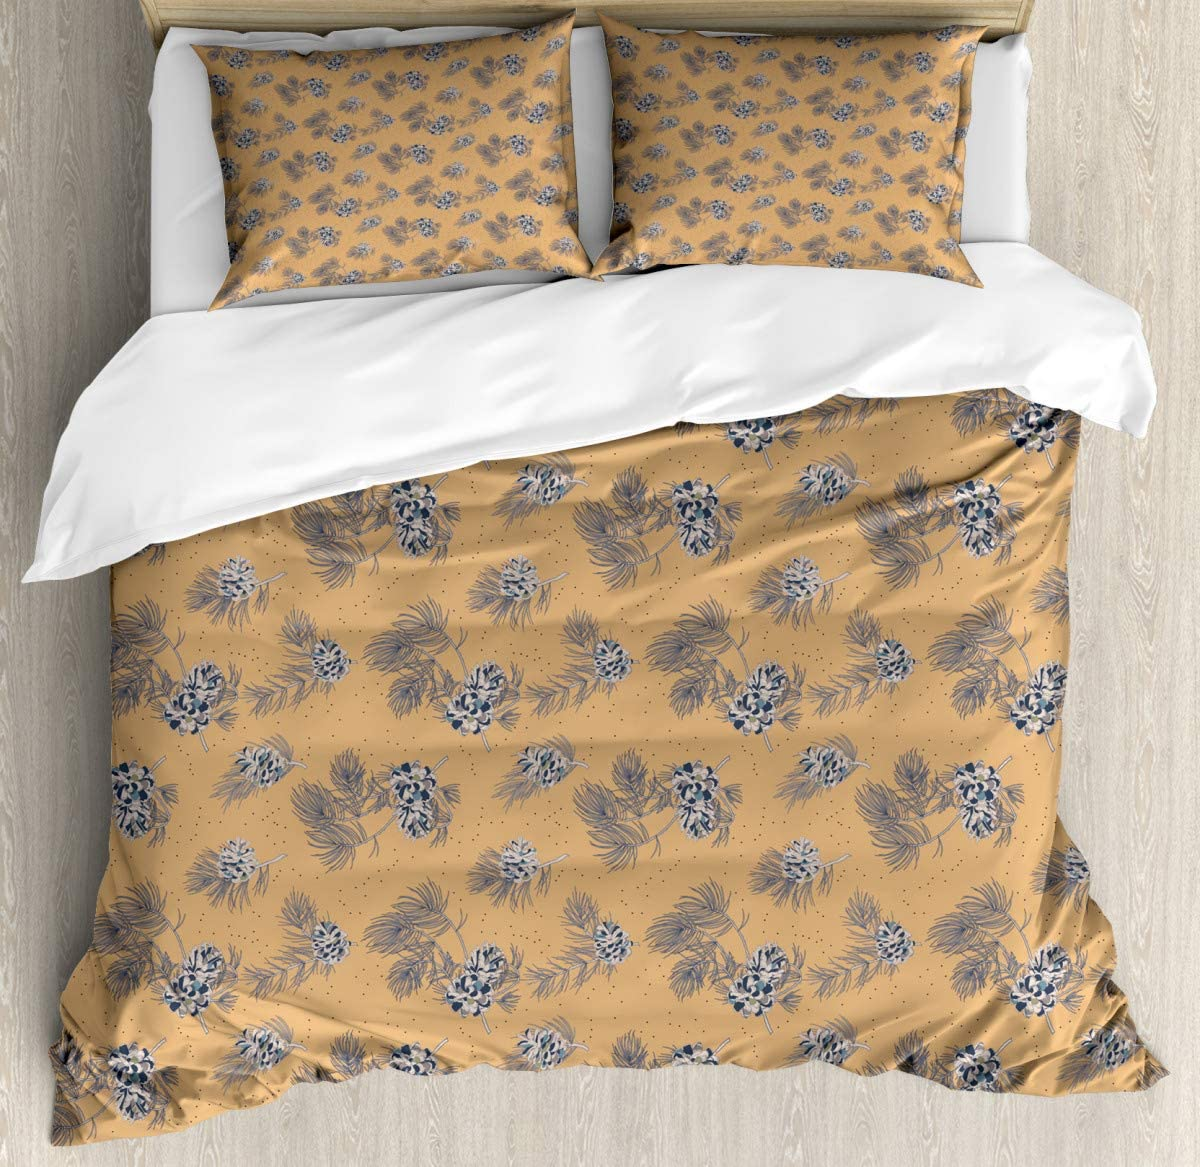 """Decor Duvet Cover Set King SizeVintage Style Branches Duvet Cover SetCustom 3 Piece Bedding Set with 2 Pillow Shams, King Size70 x86/19""""x29""""inch"""